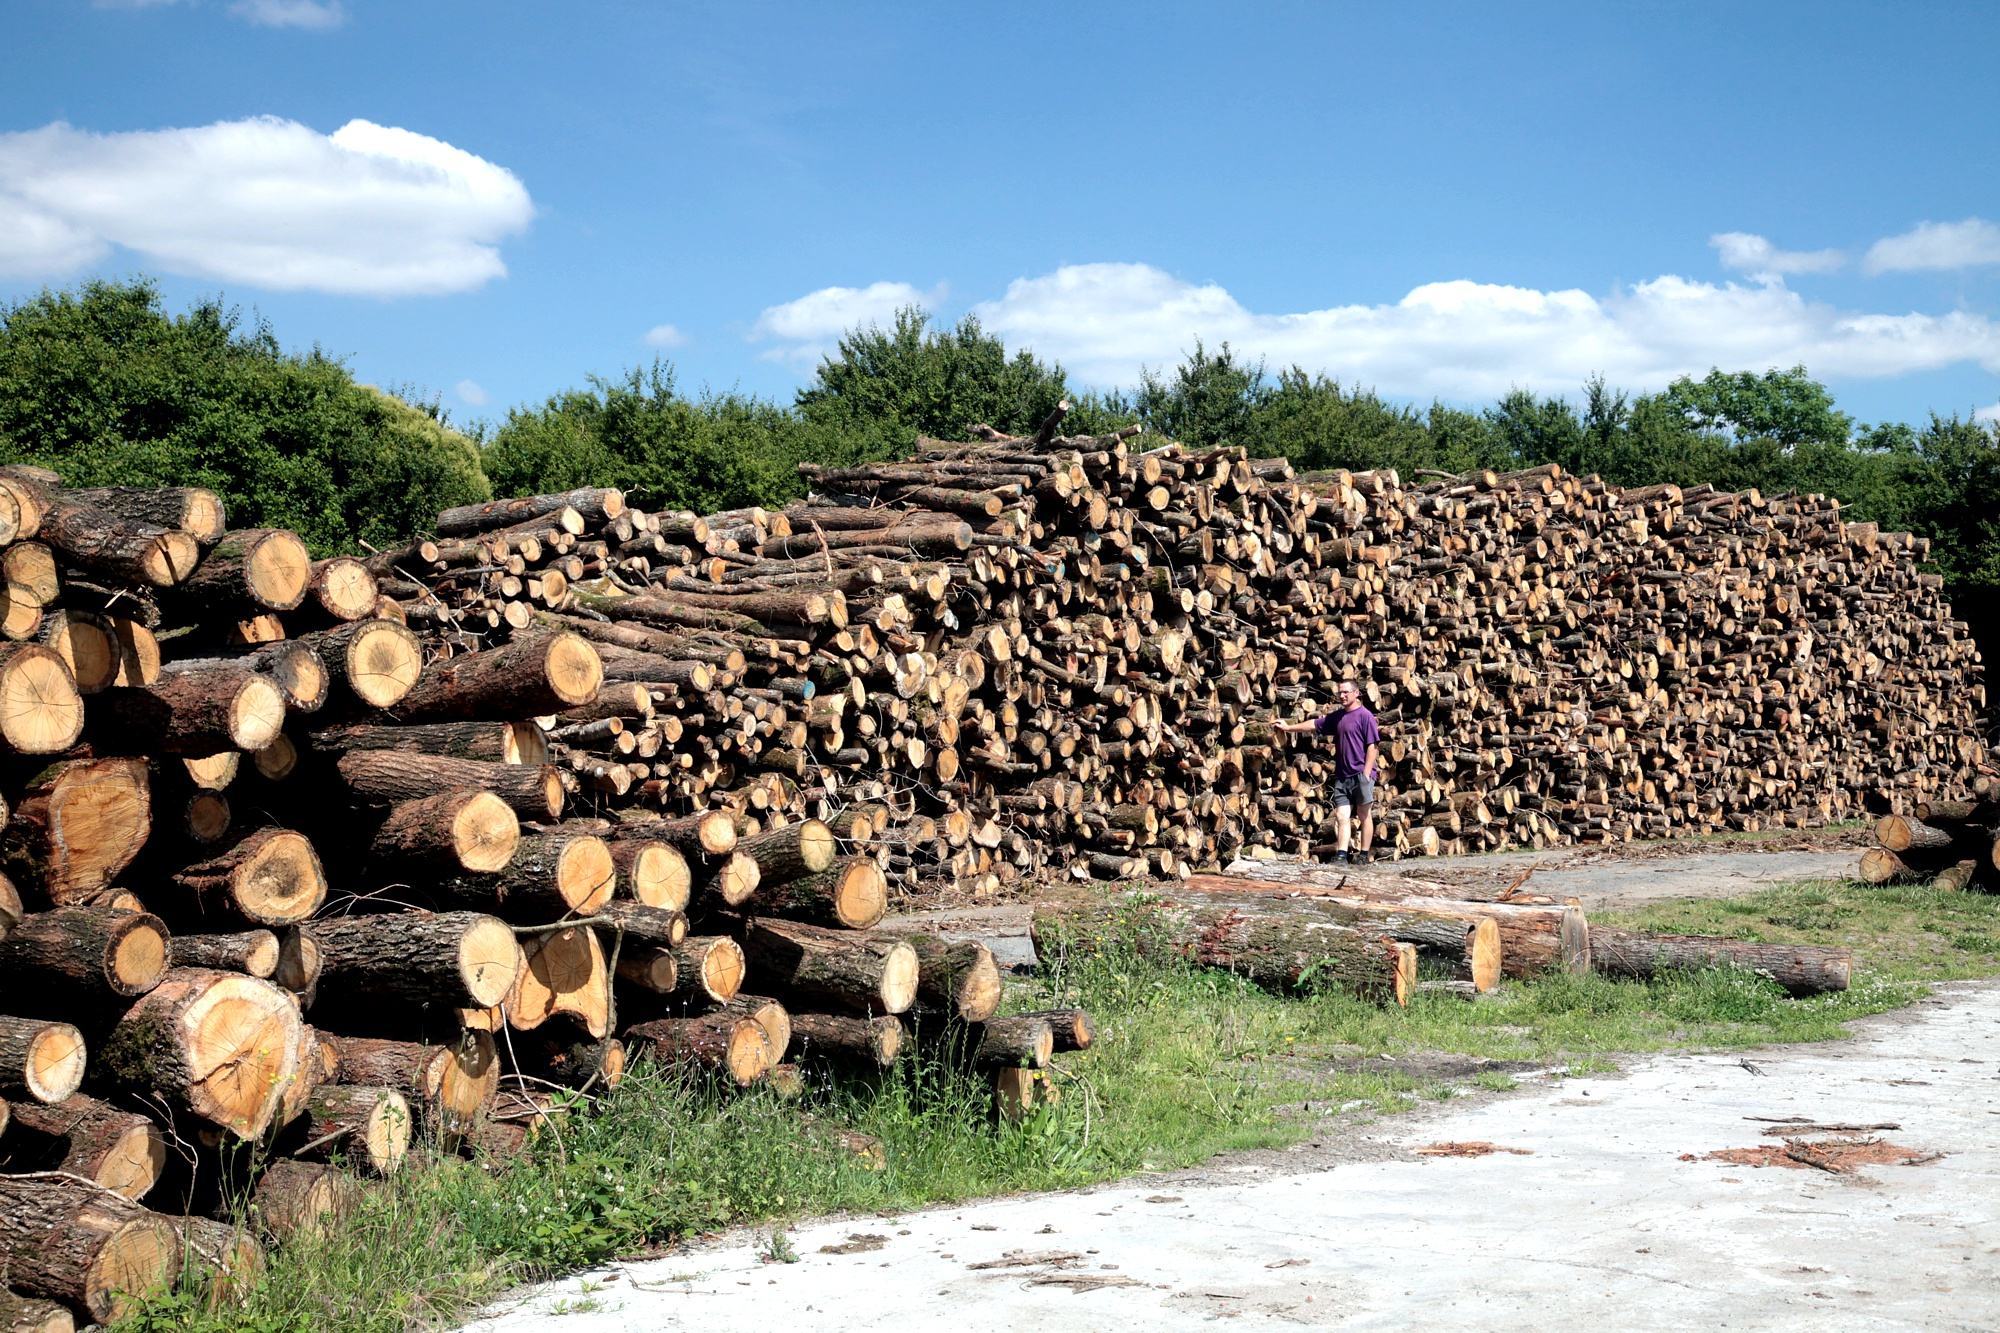 Production transformation et vente d'essences de bois en Vendée